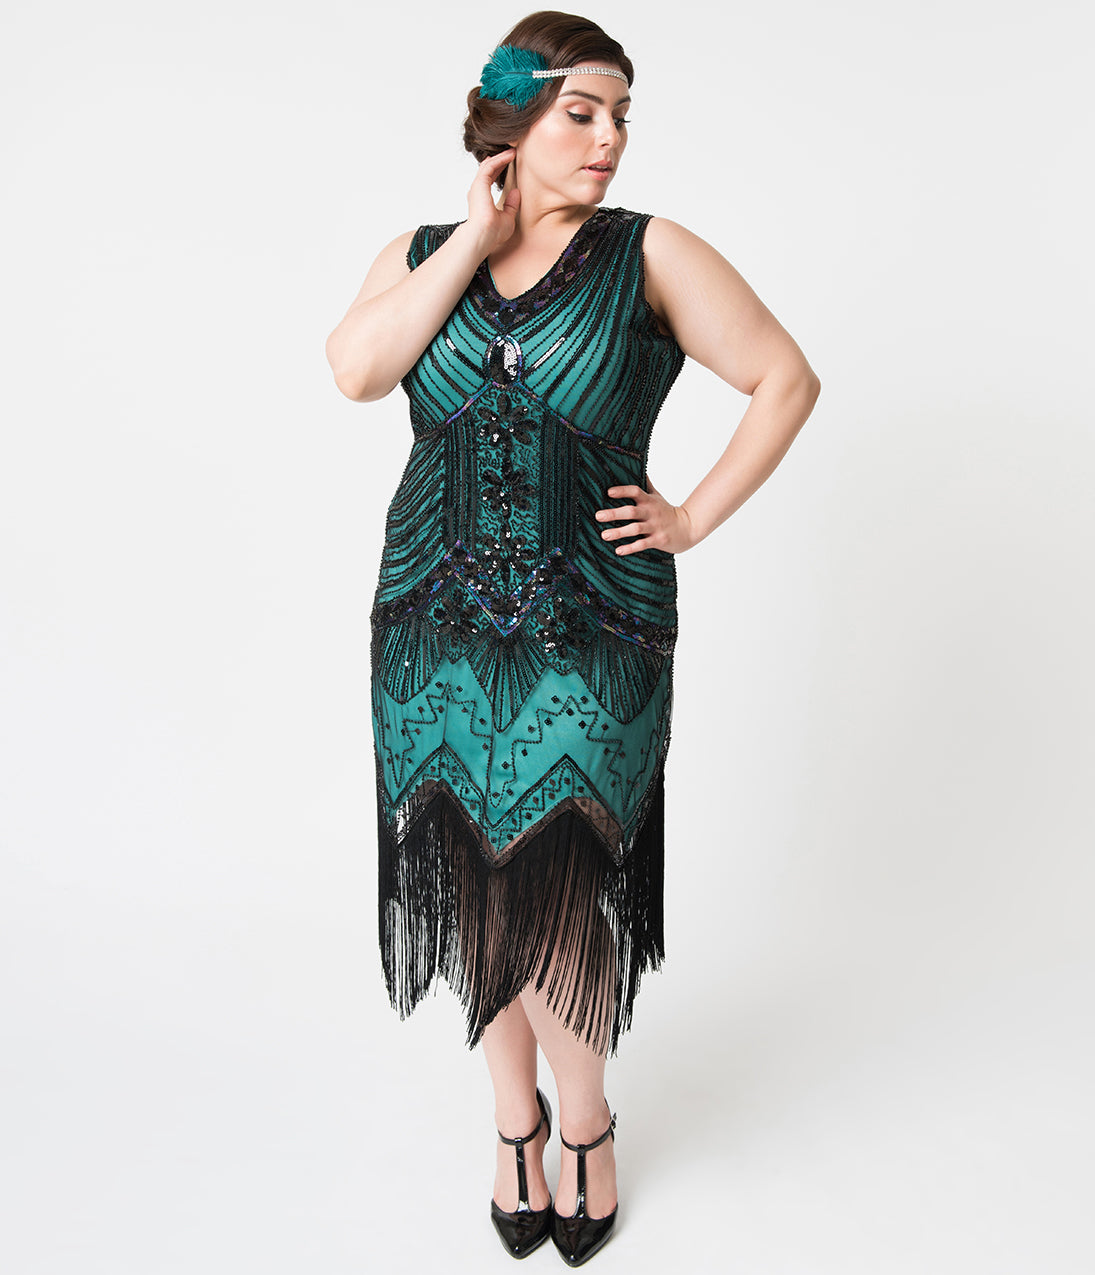 1920s Costumes: Flapper, Great Gatsby, Gangster Girl Unique Vintage Plus Size 1920S Deco Teal  Black Veronique Fringe Flapper Dress $74.00 AT vintagedancer.com